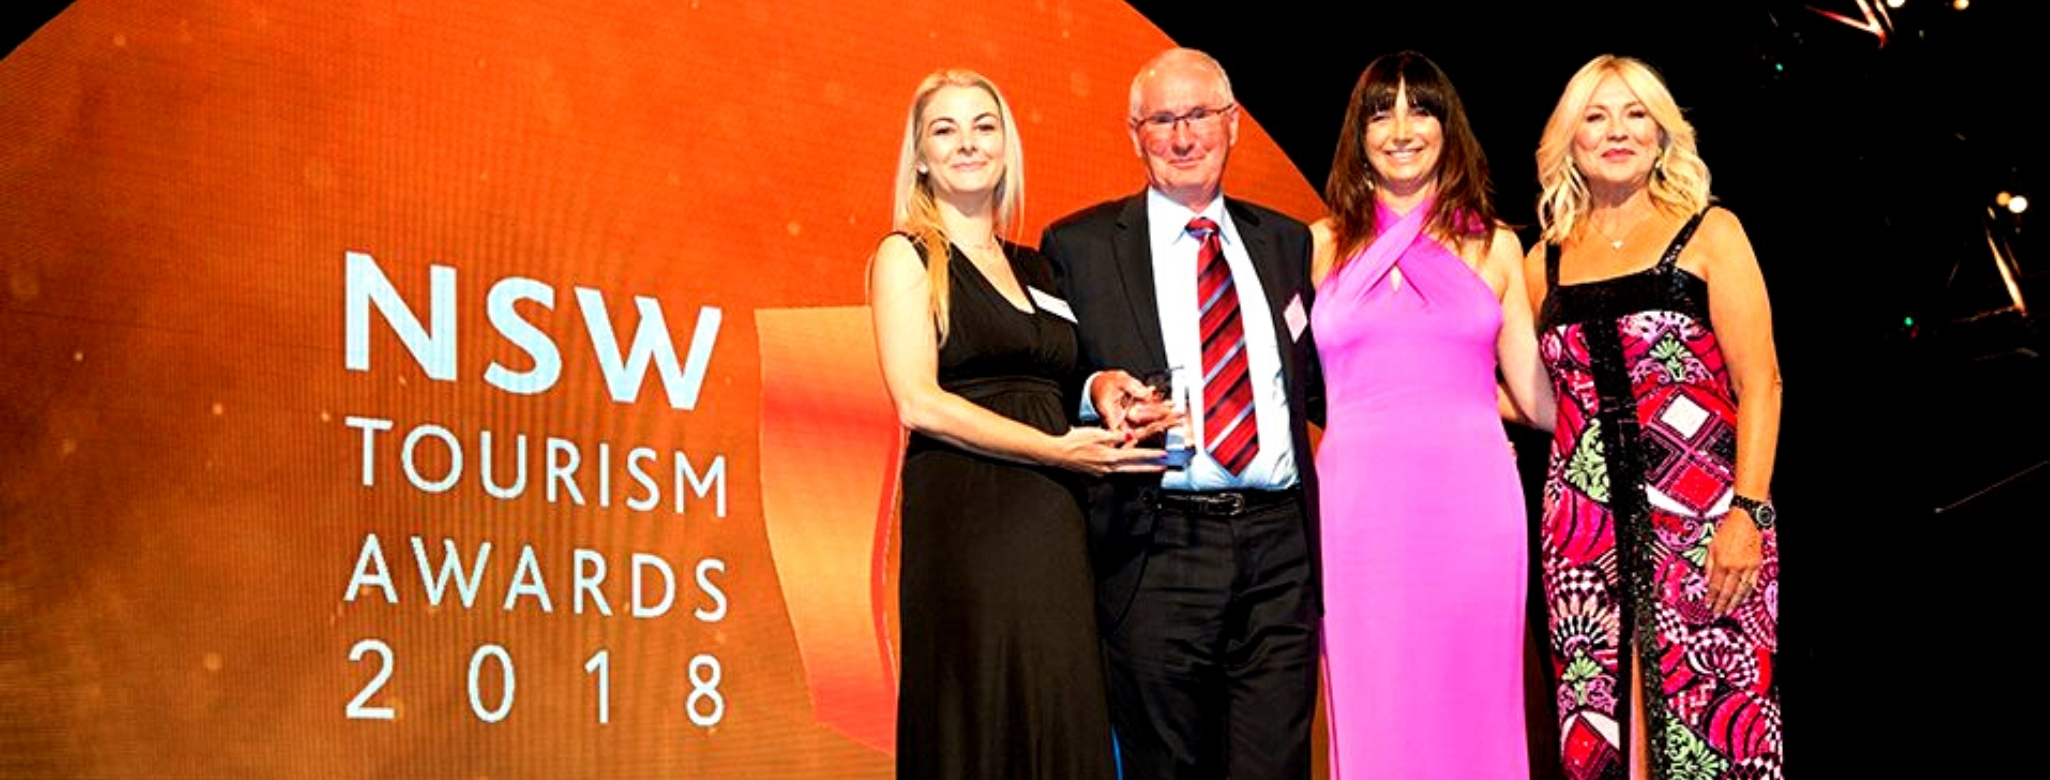 Riverside Holiday Resort Manager Rebecca Beaton beside FCWSC CEO Ken Conway at the 2018 NSW Tourism Awards